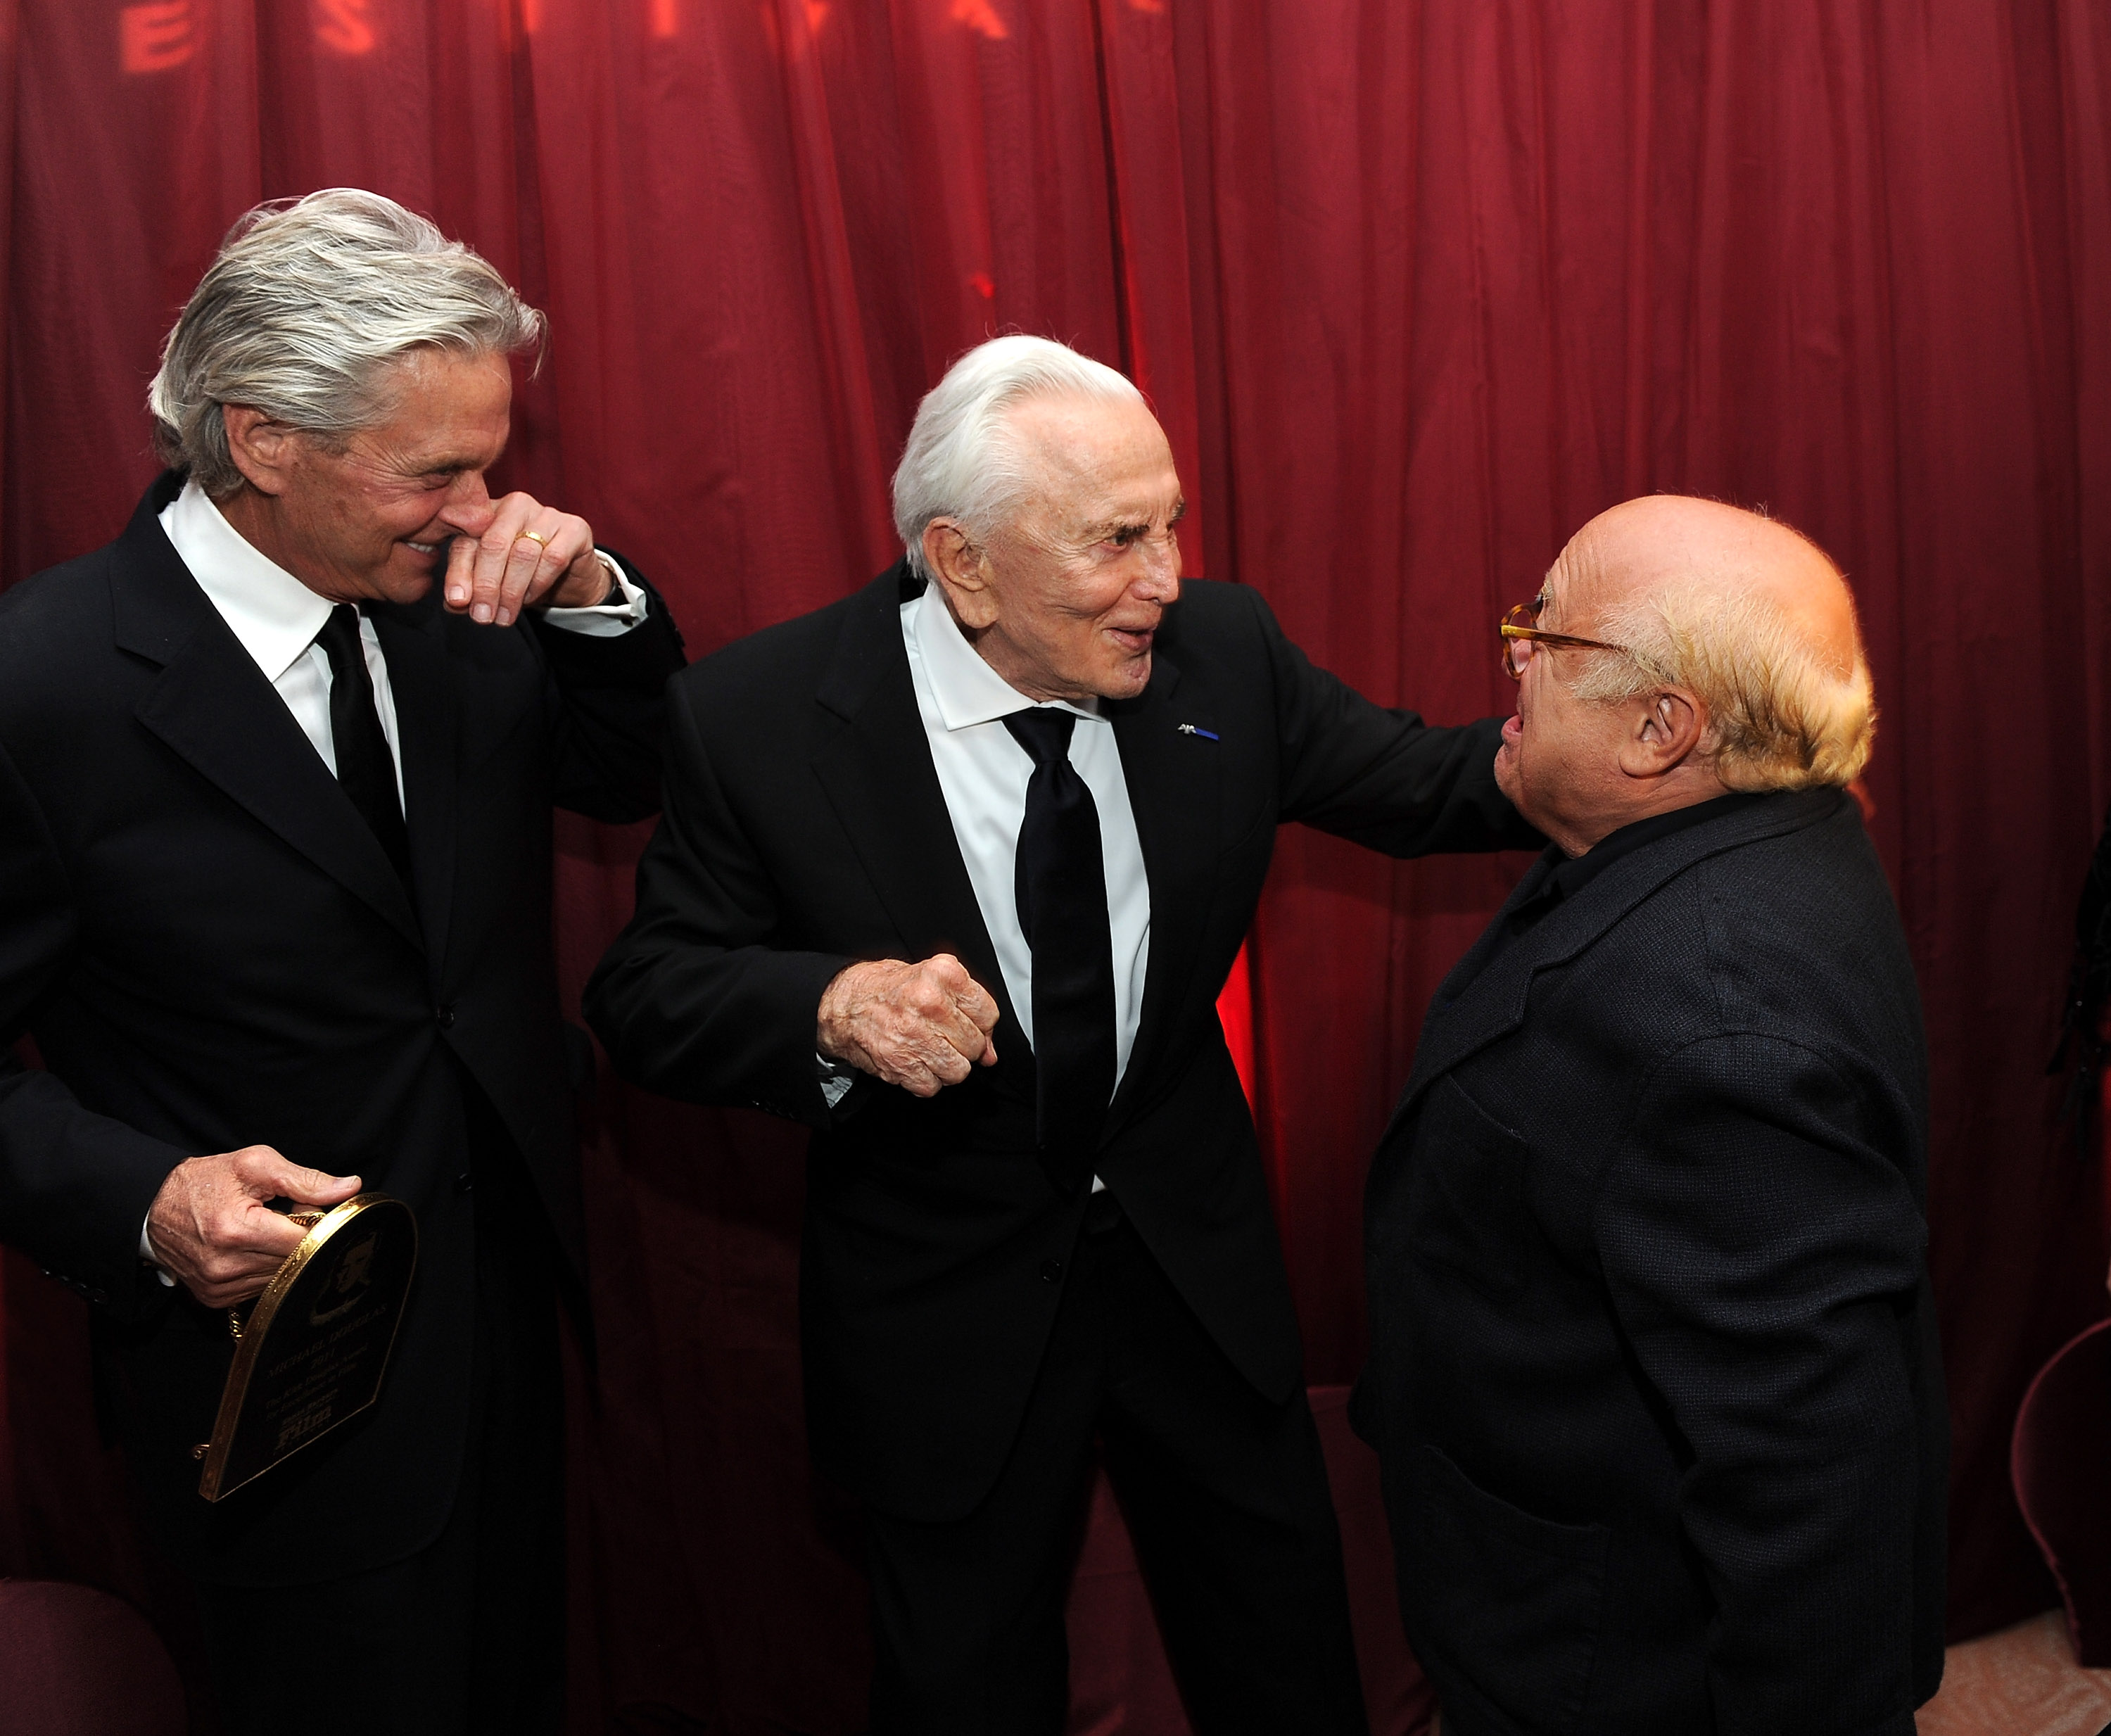 Actor Michael Douglas, actor Kirk Douglas and actor Danny Devito attend SBIFF's 2011 Kirk Douglas Award for Excellence In Film honoring Michael Douglas at the Biltmore Four Seasons on October 13, 2011 in Santa Barbara, California. (Photo by Michael Buckner/Getty Images)